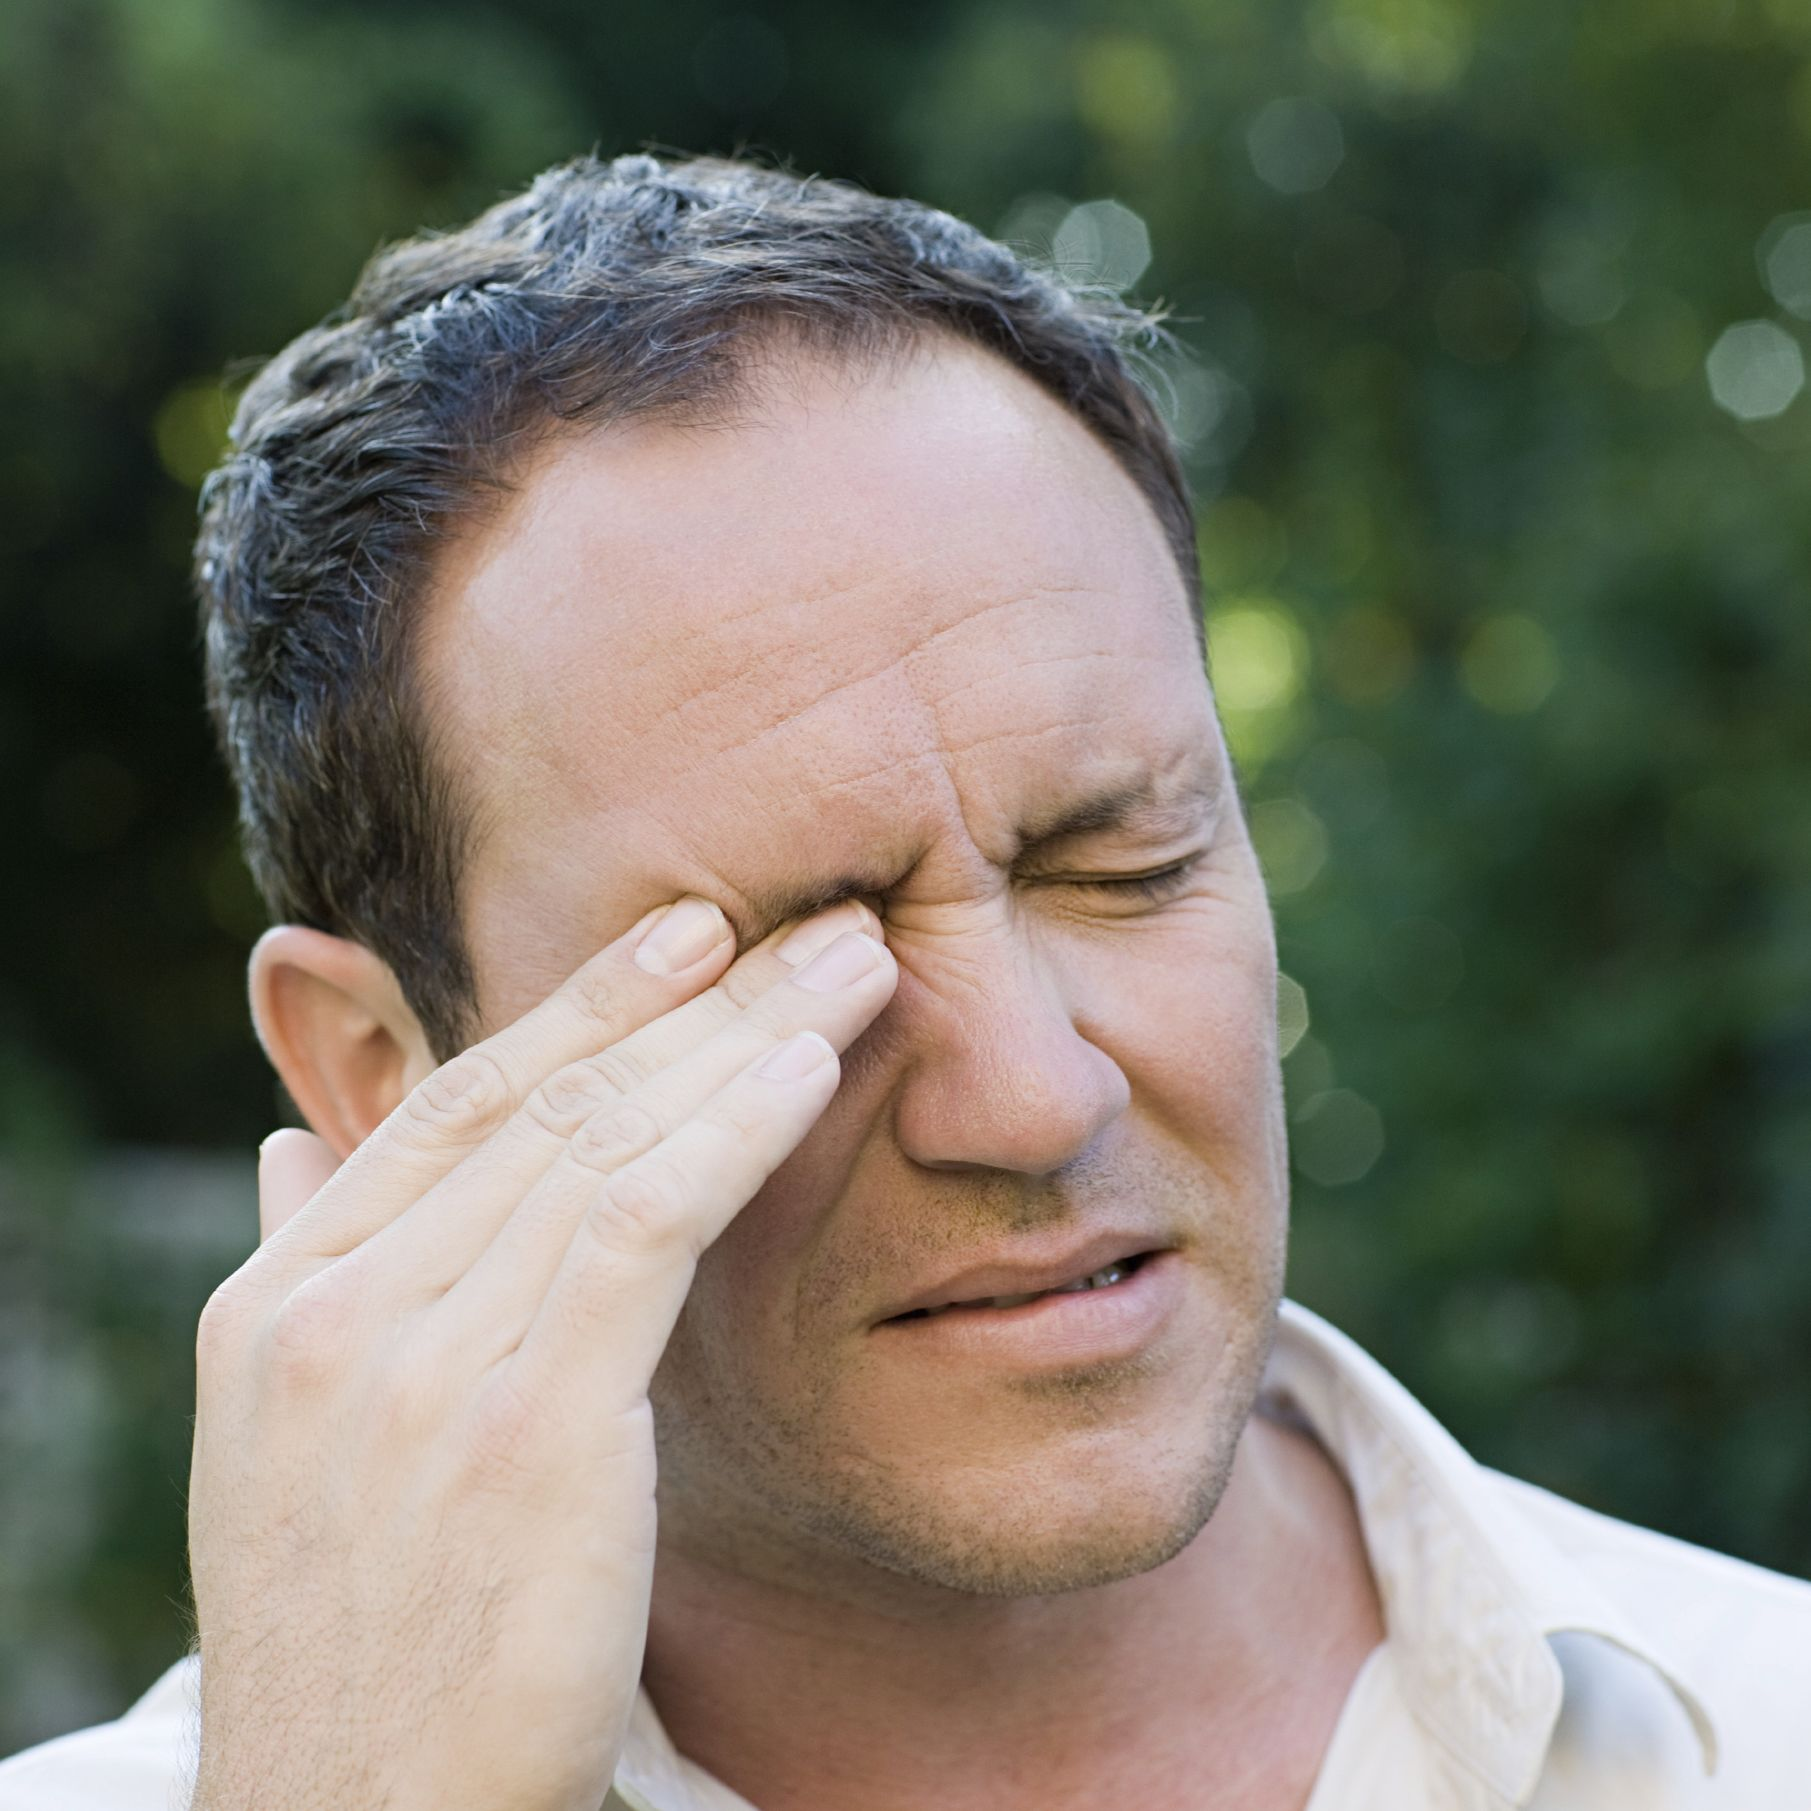 Man rubbing his eye